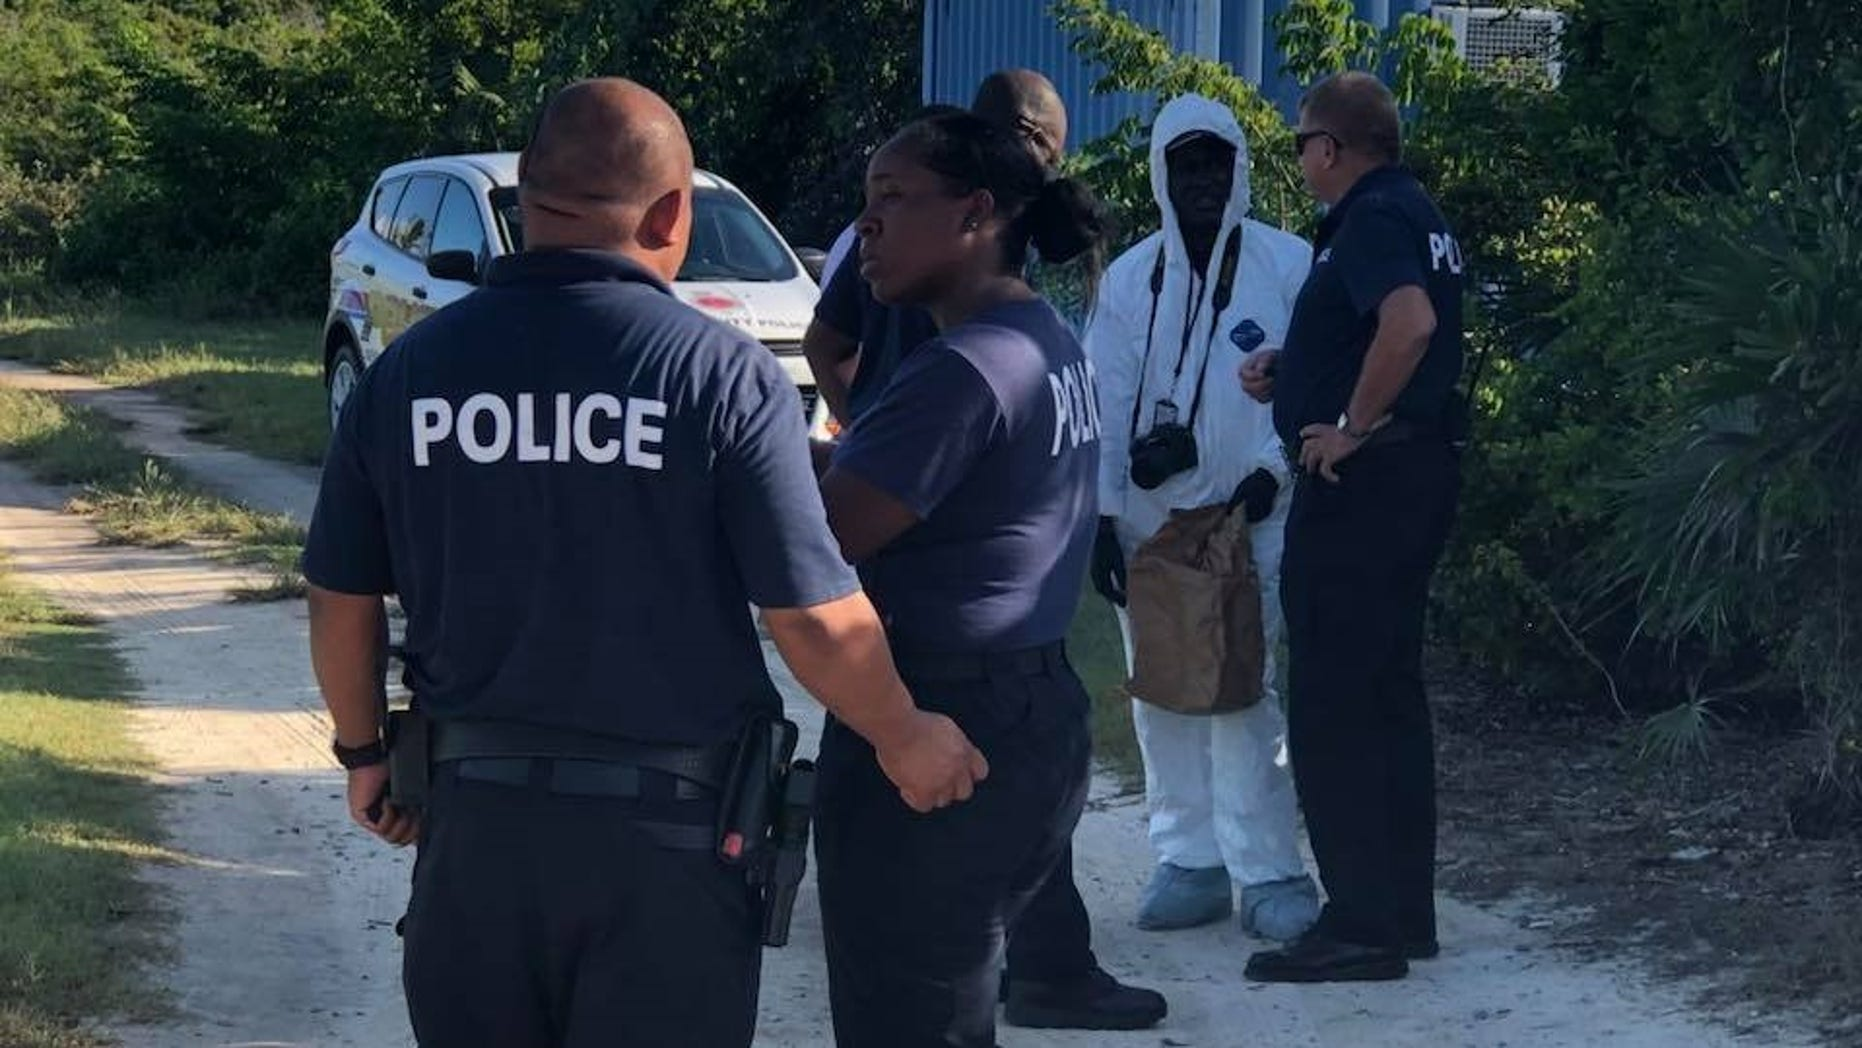 Police in Turks and Caicos launched a murder investigation after American tourist Marie Kuhnla was found dead in the bushes near a resort.